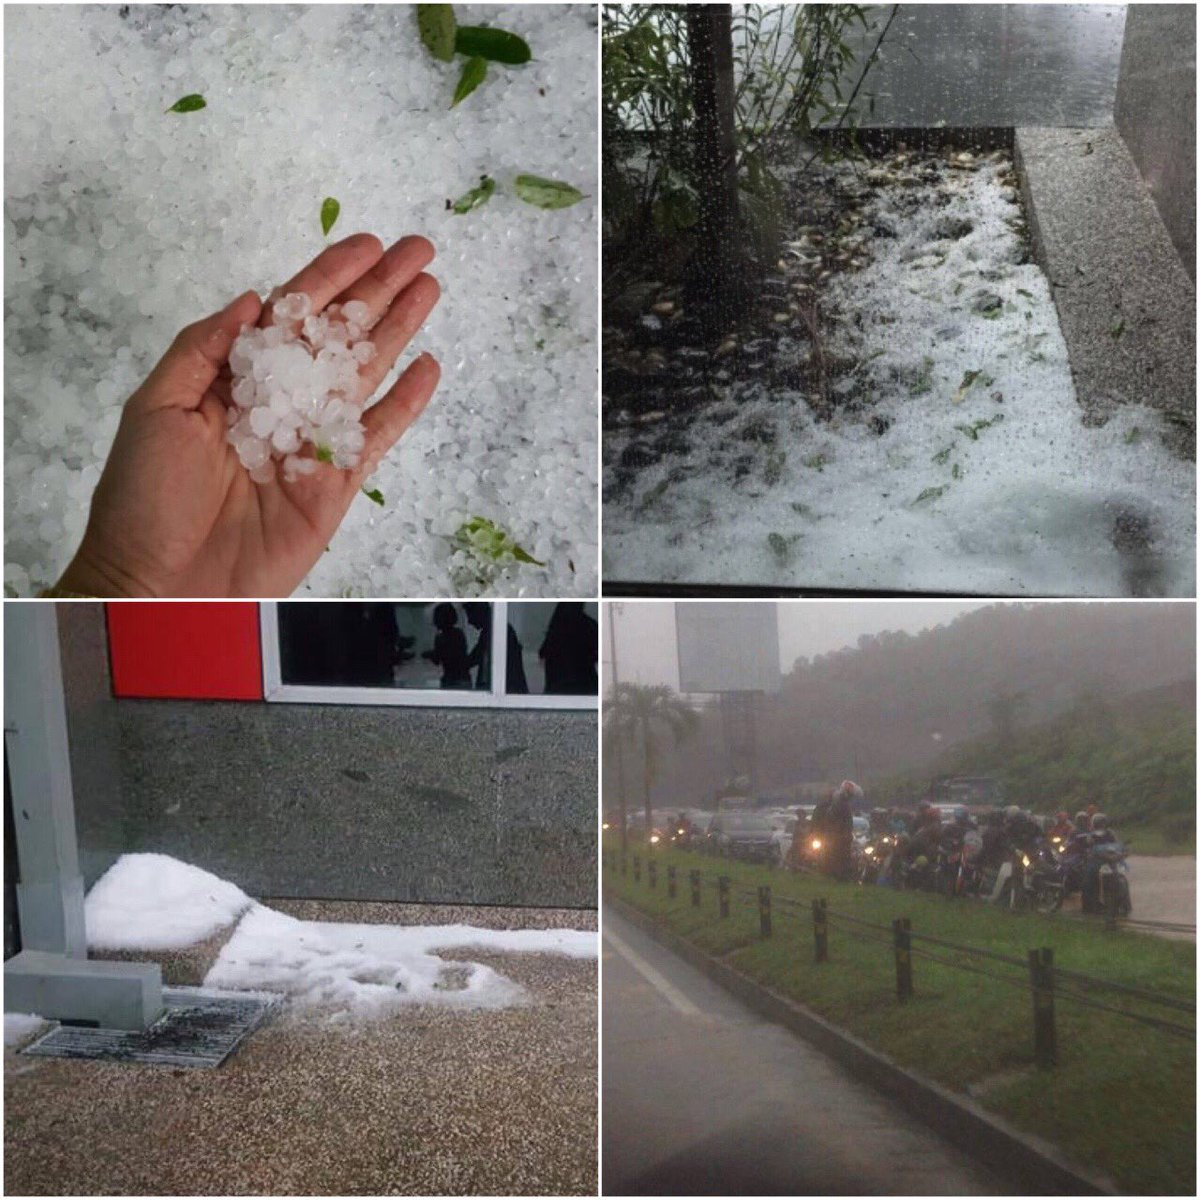 It's raining ice in KL!! Those of you guys making your way home, be careful driving! #FlyWeatherForecast https://t.co/CJcZPo2Ygo